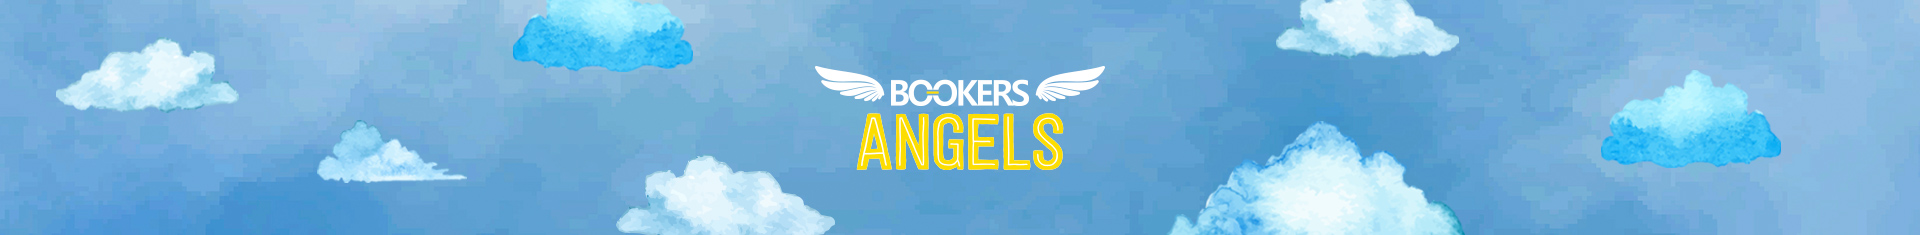 Have a Bookers Angel as your guide